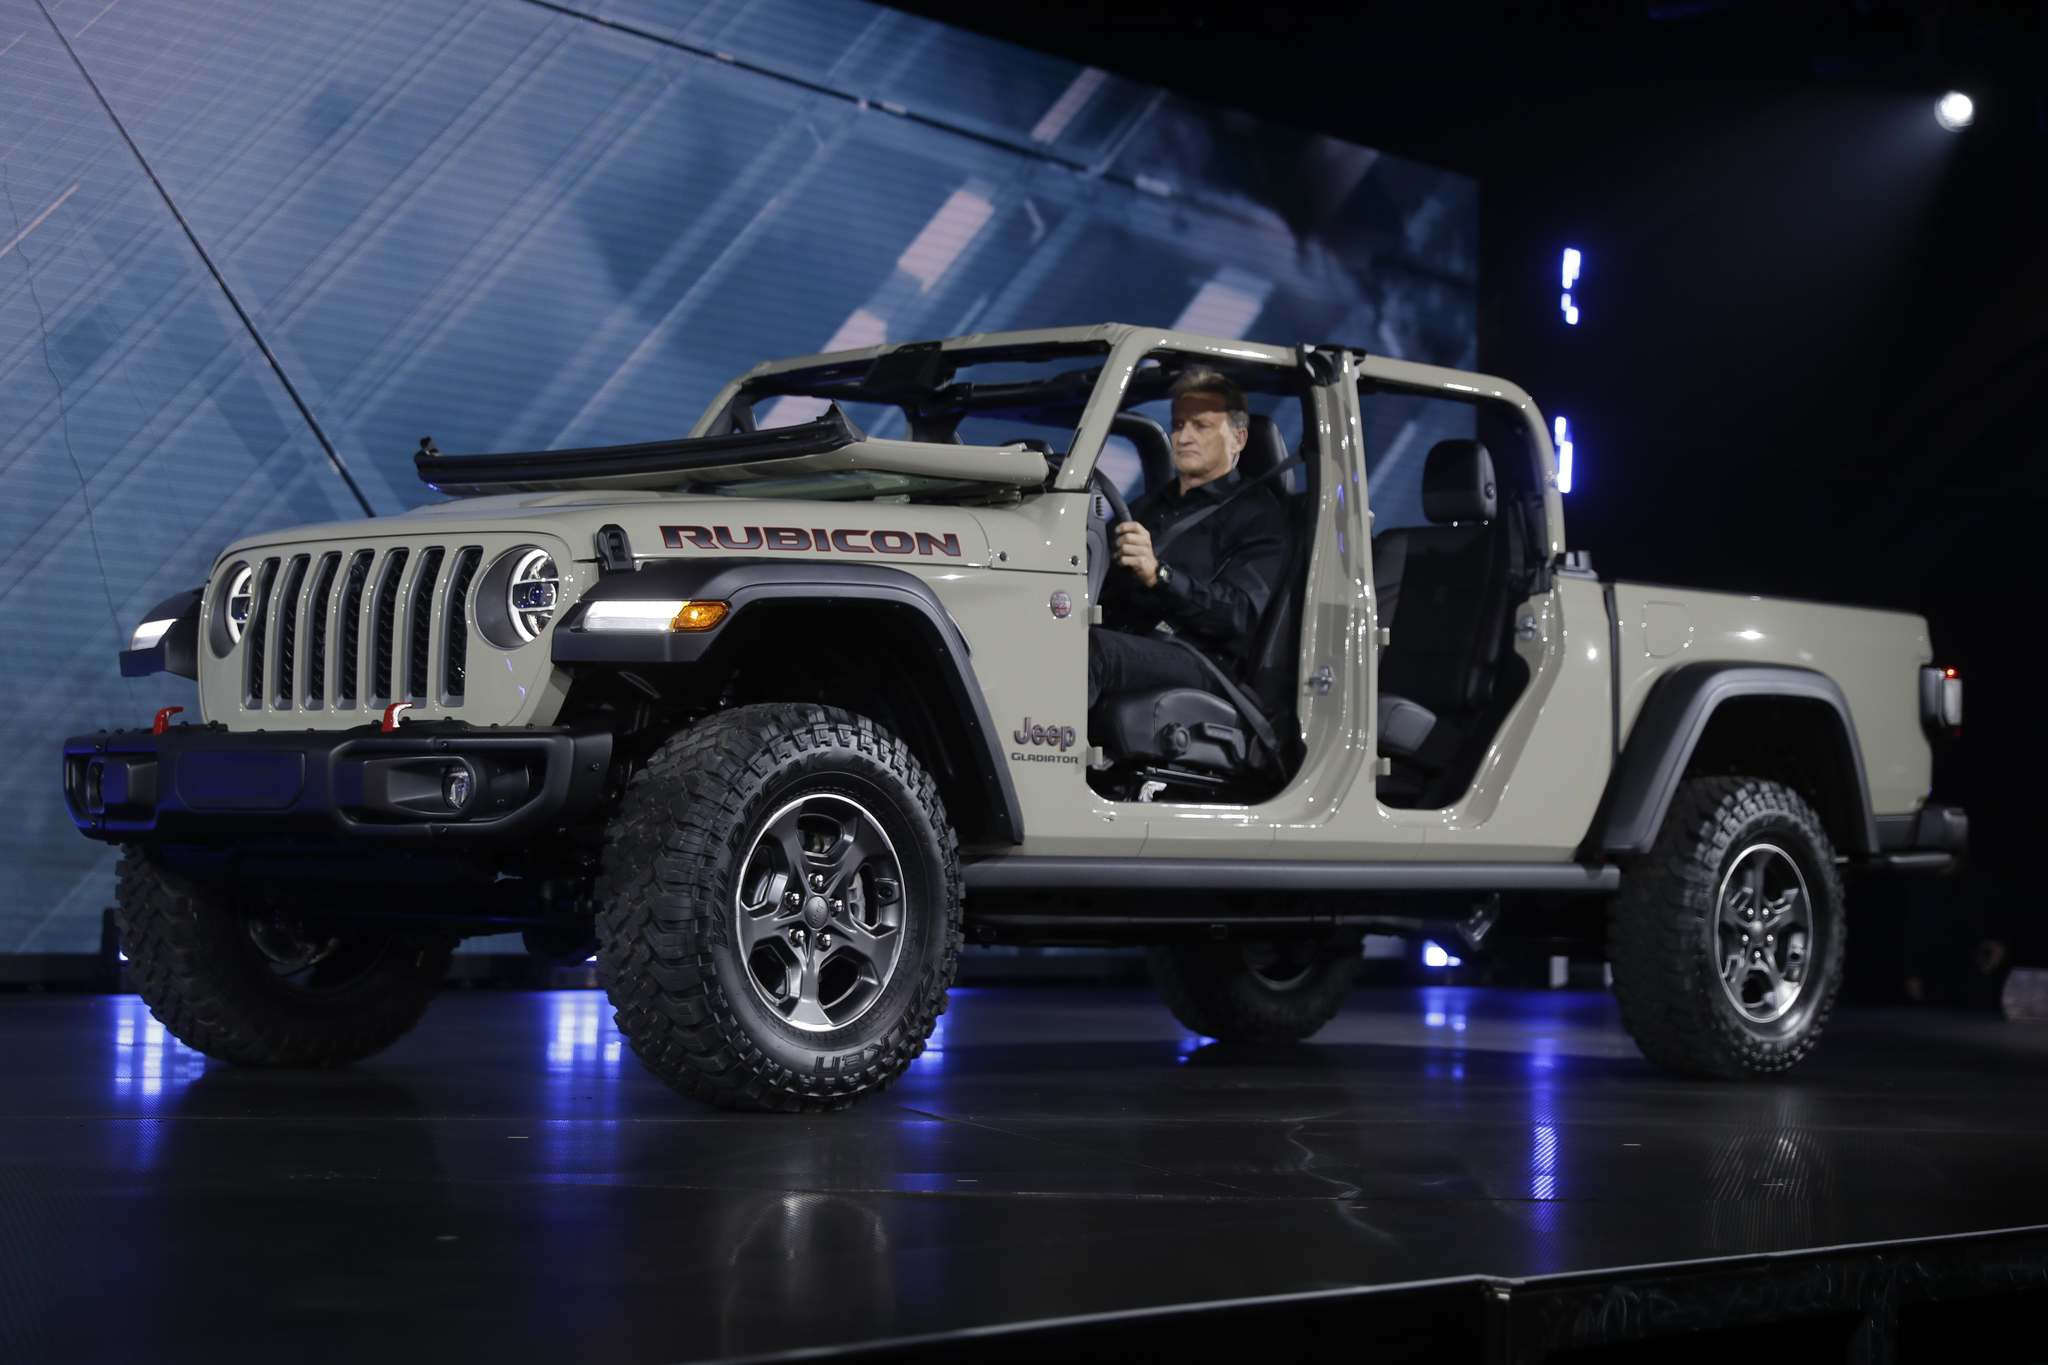 CHRIS CARLSON / THE ASSOCIATED PRESS FILESJeep's new Gladiator was revealed at the Los Angeles Auto Show, reviving a brand that was in production almost continuously from 1947 to 1992.